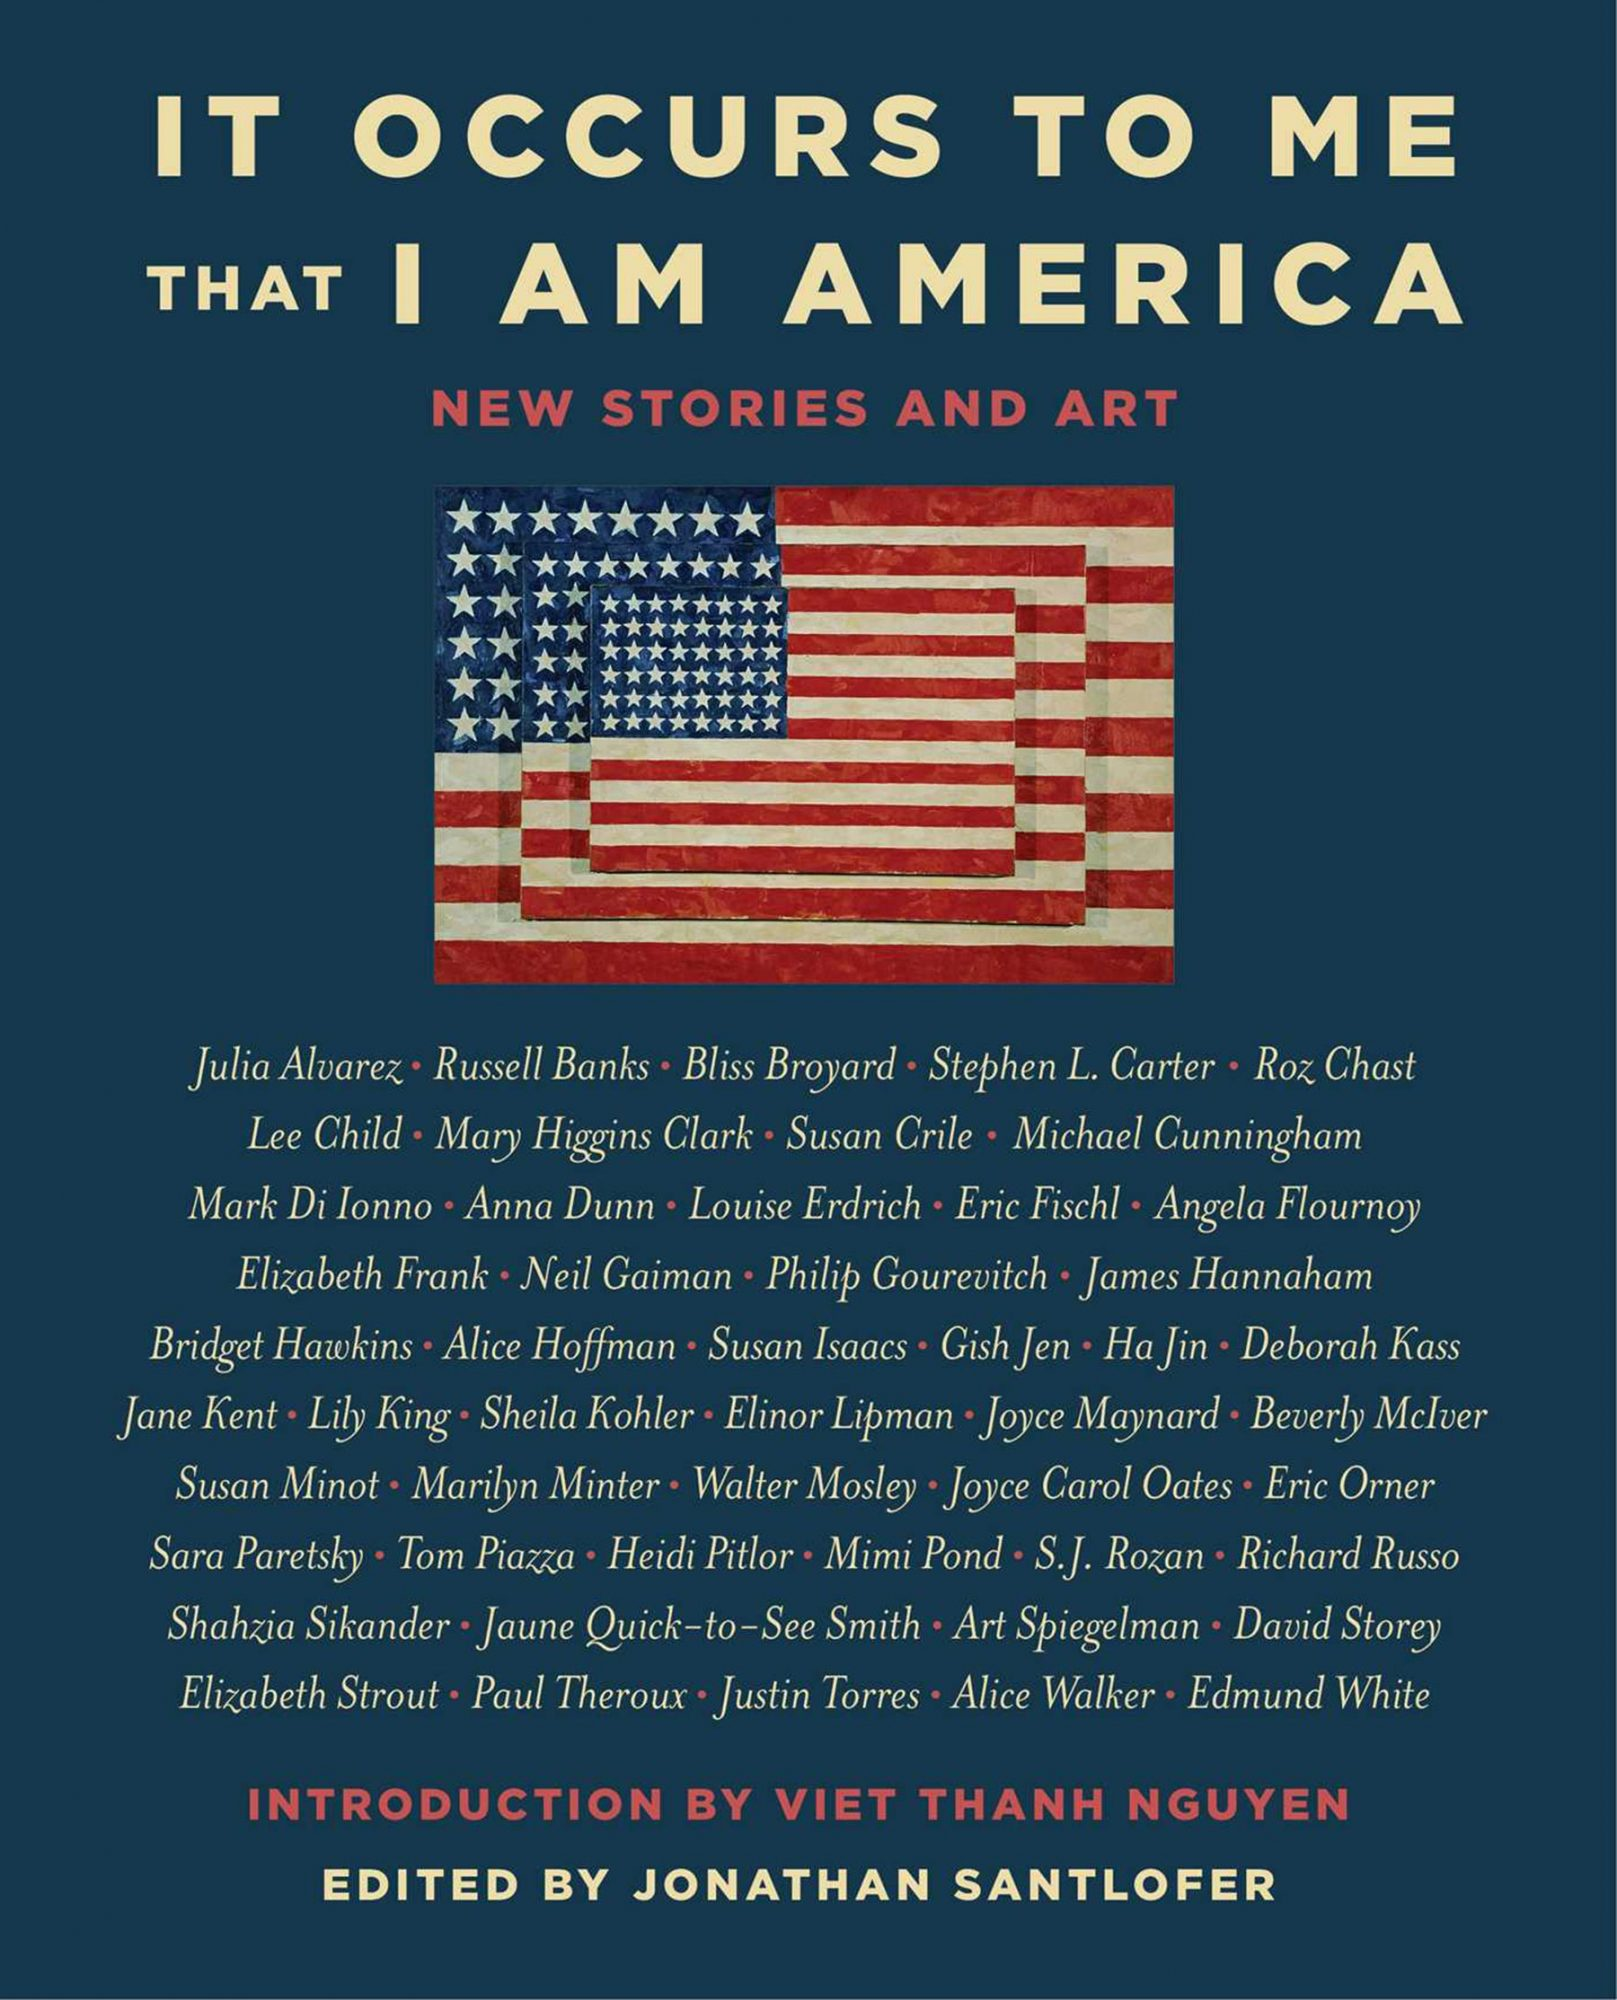 It Occurs to Me That I Am America edited by Jonathan Santlofer